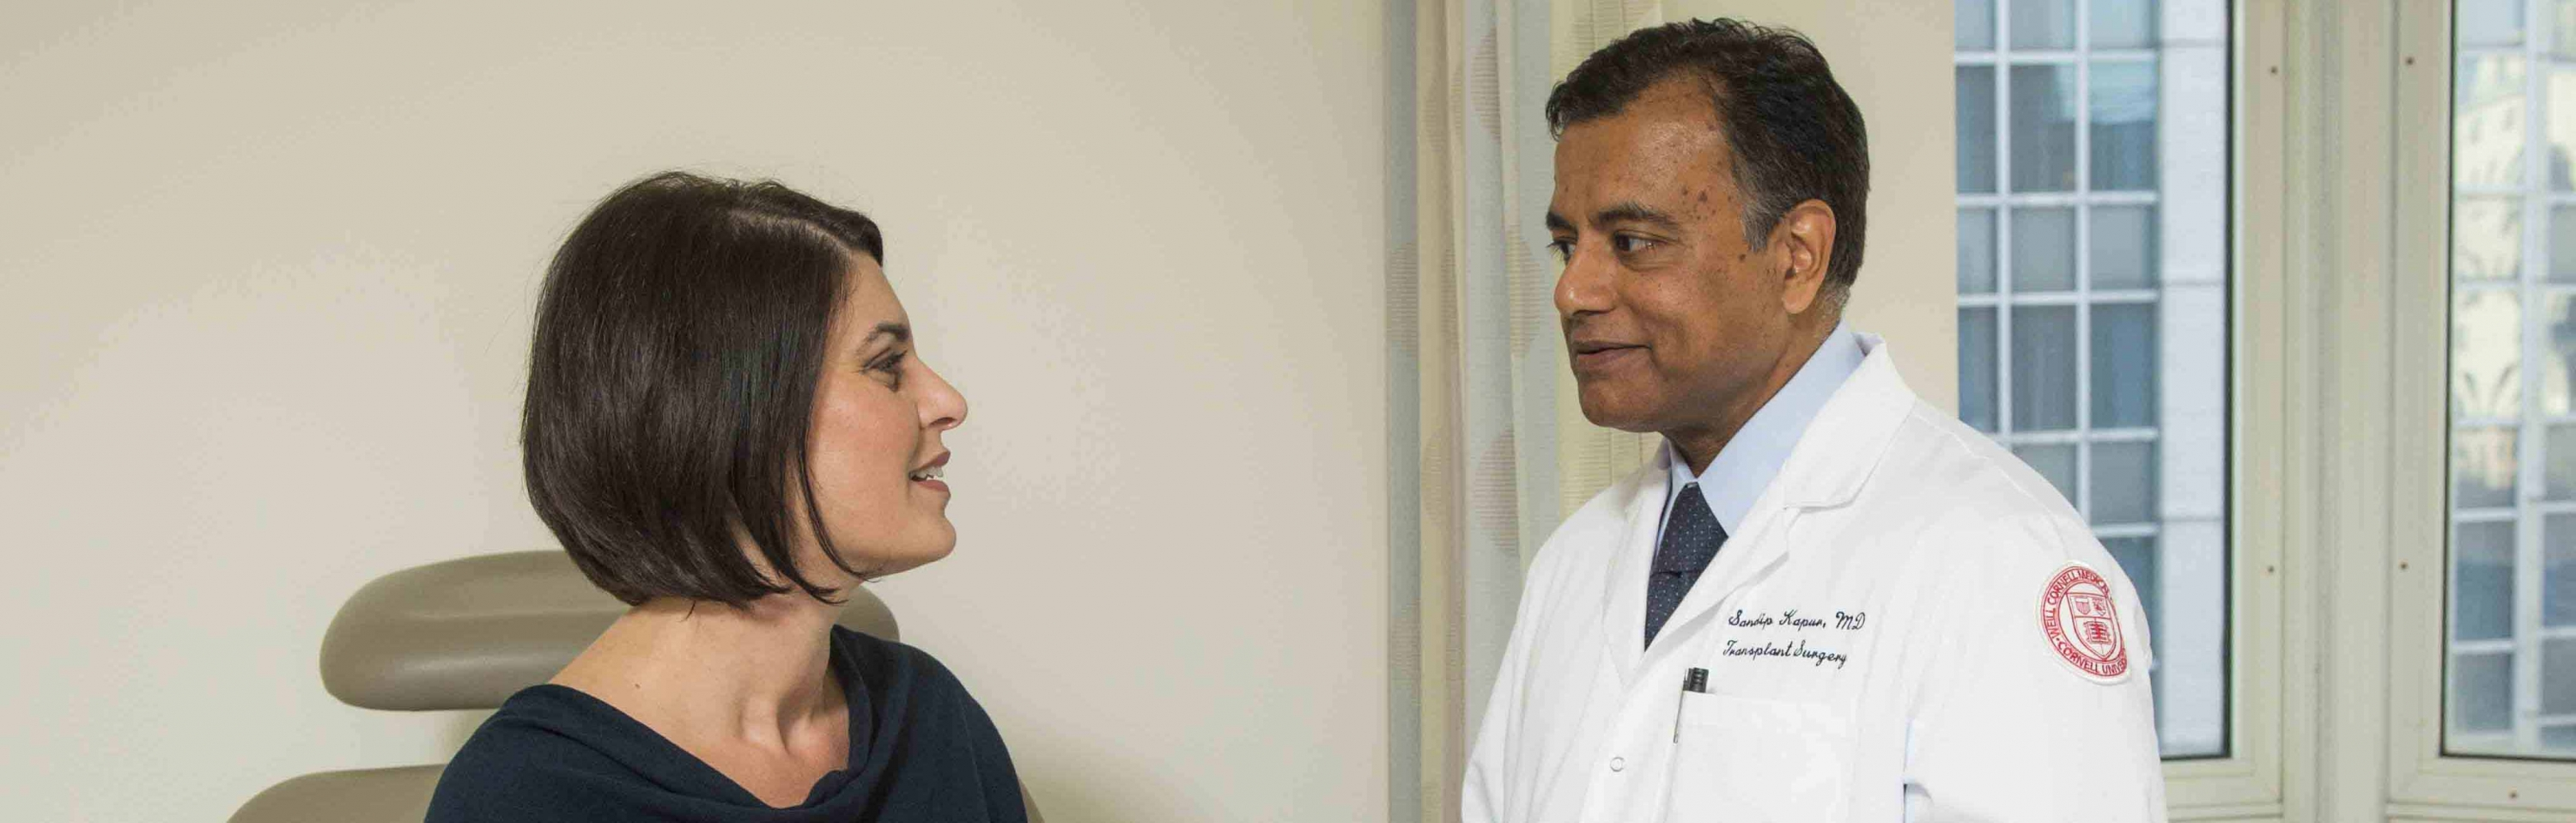 Dr. Sandip Kapur interacts with a patient.